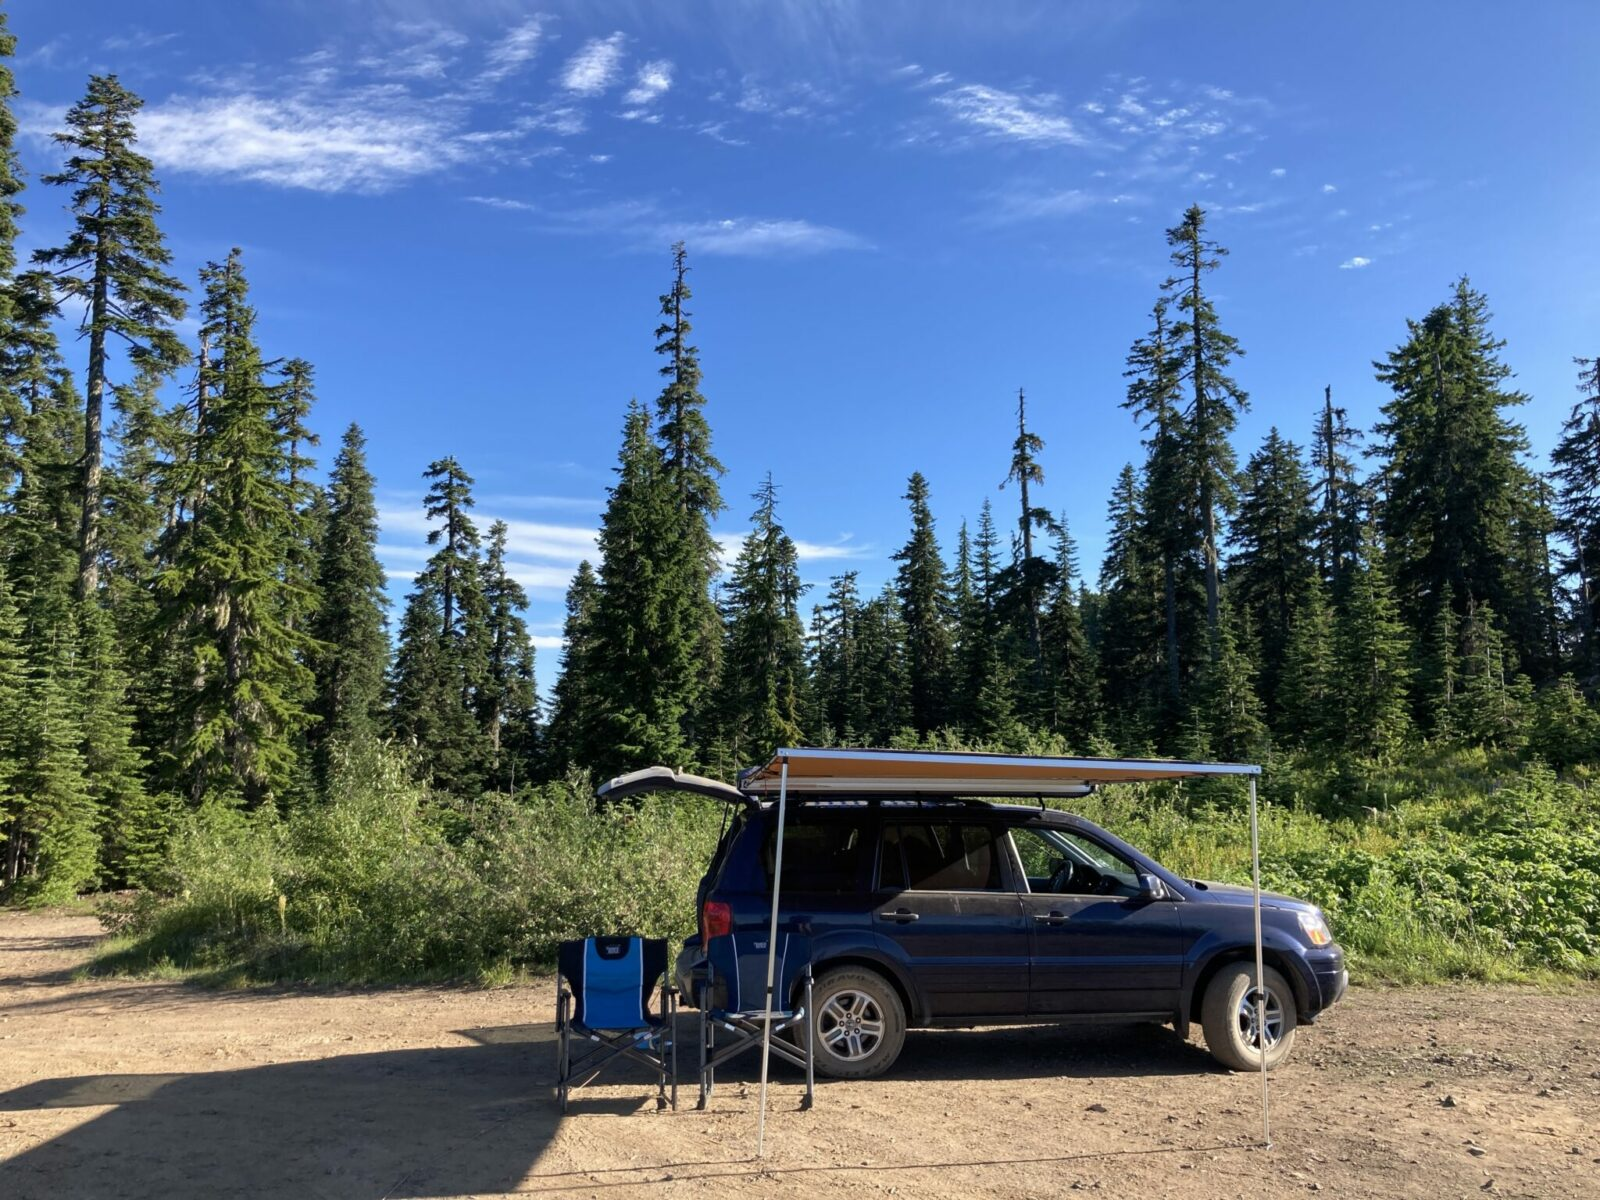 A blue SUV parked on a dirt open area in the forest surrounded by bushes. The rear hatch of the SUV is open and a roof top awning is set up on the side. There are two camp chairs sitting next to it.